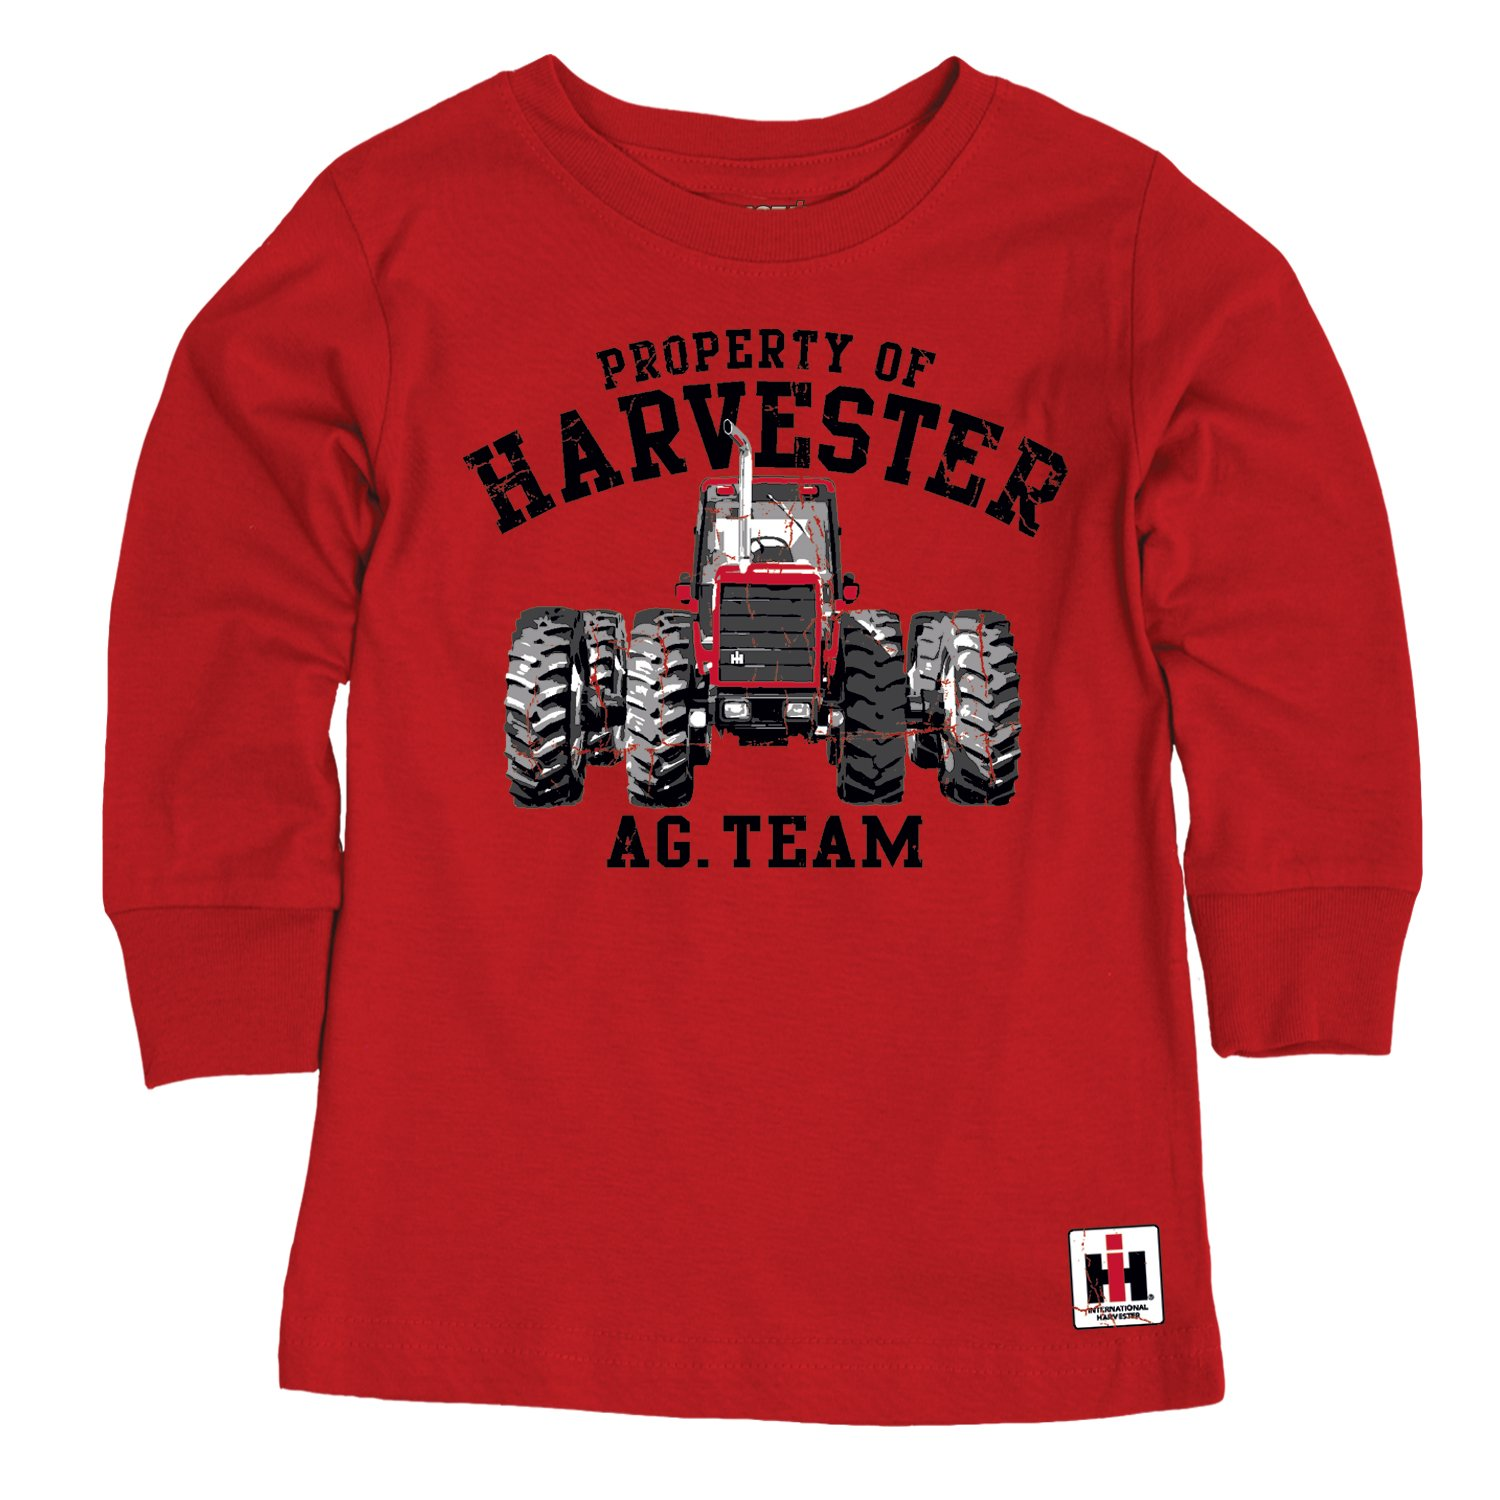 CASE IH Youth Long Sleeve Tee IH Property of Harvester